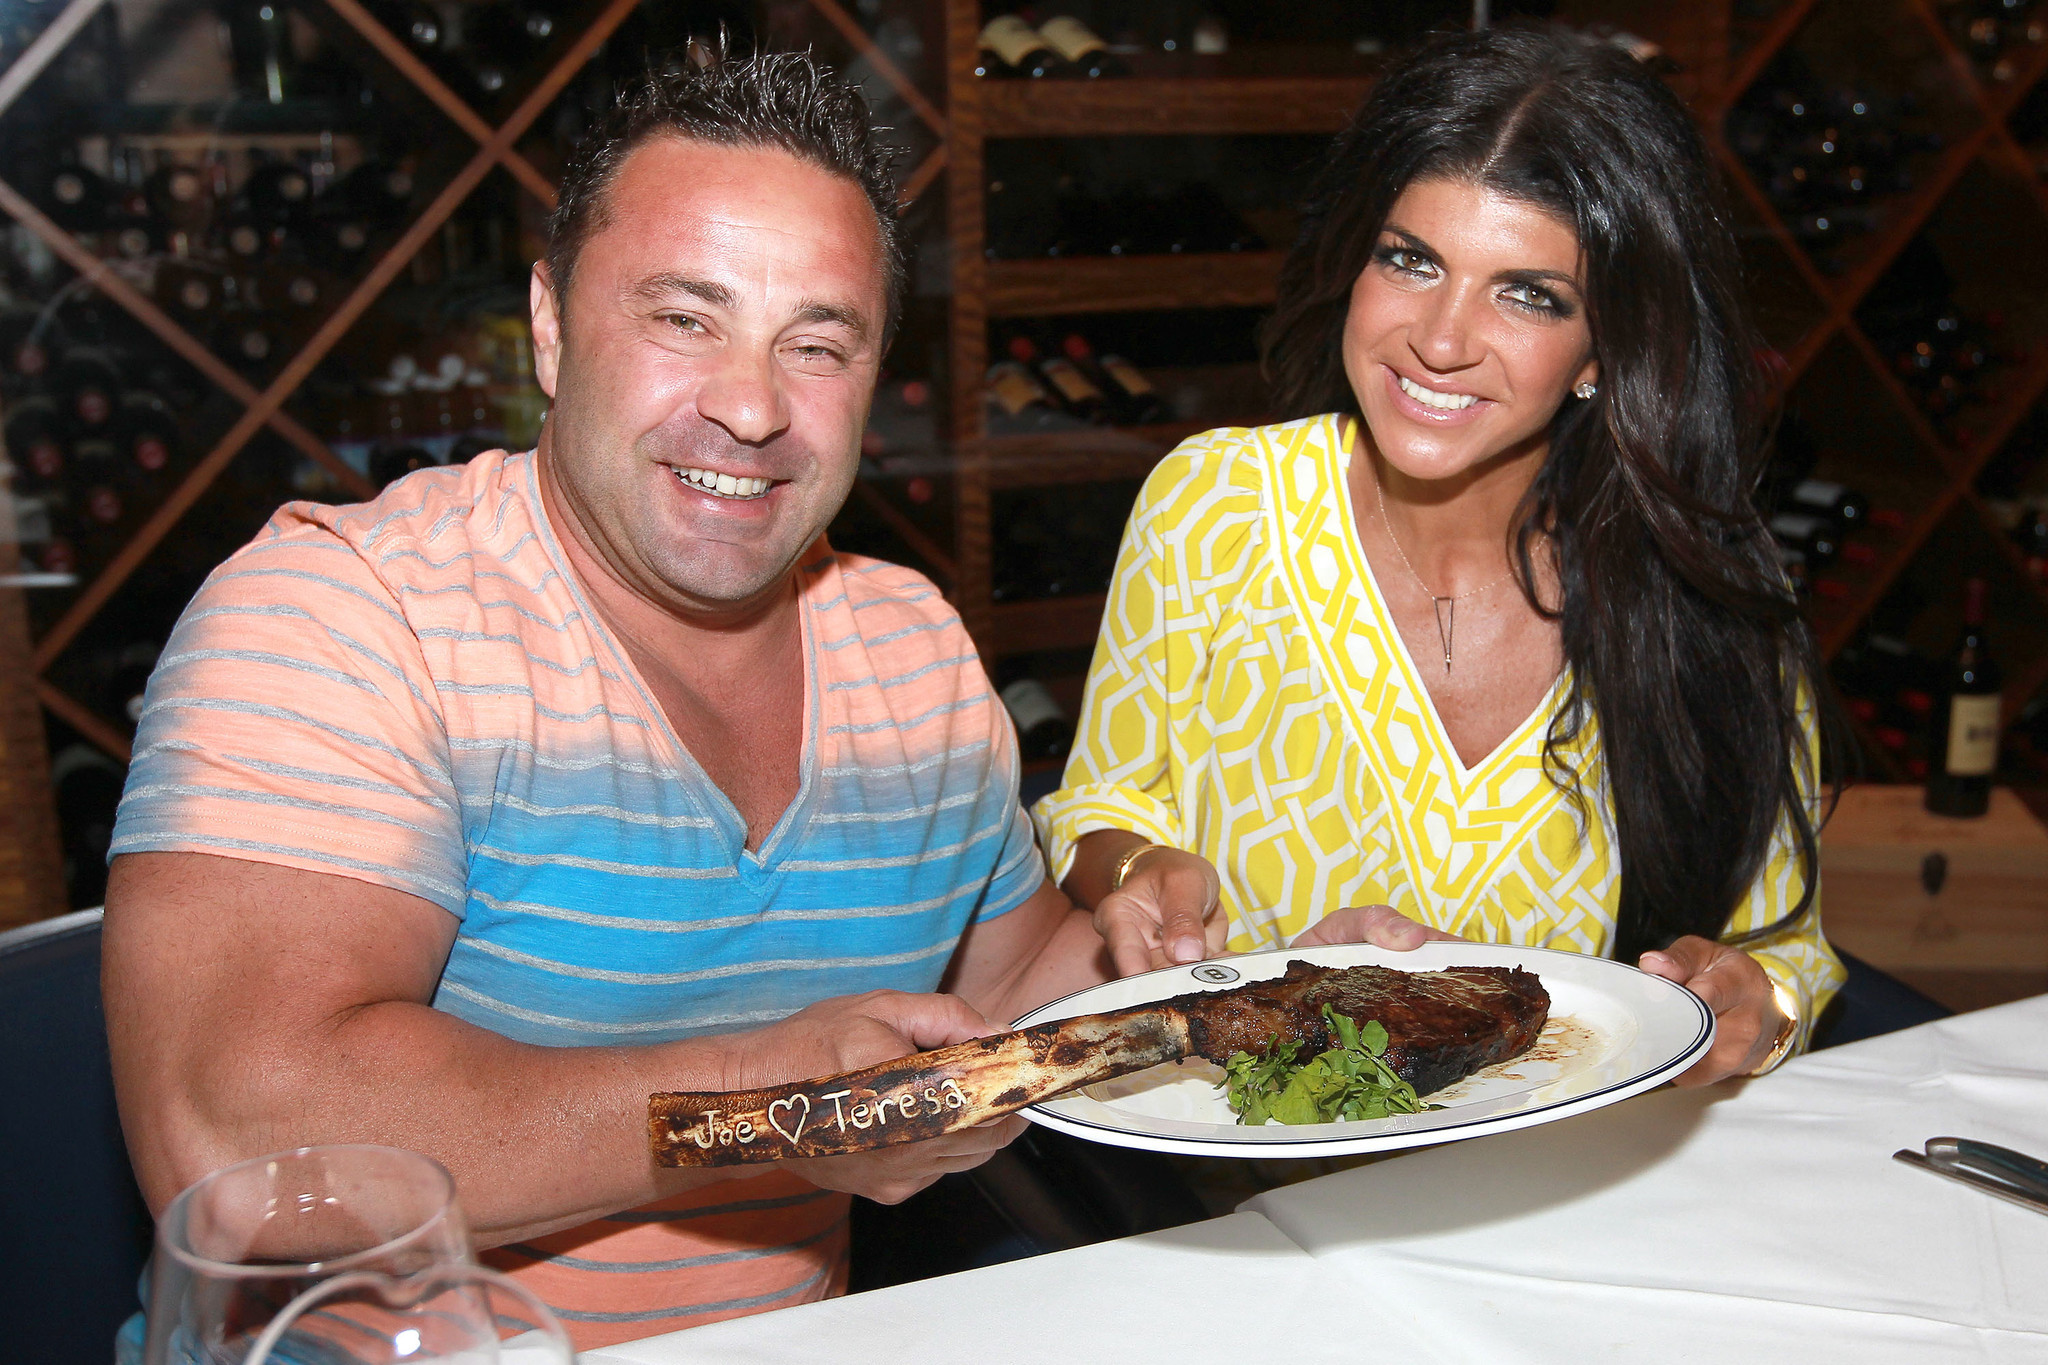 Celeb-spotting around South Florida - Teresa Giudice and her husband Joe